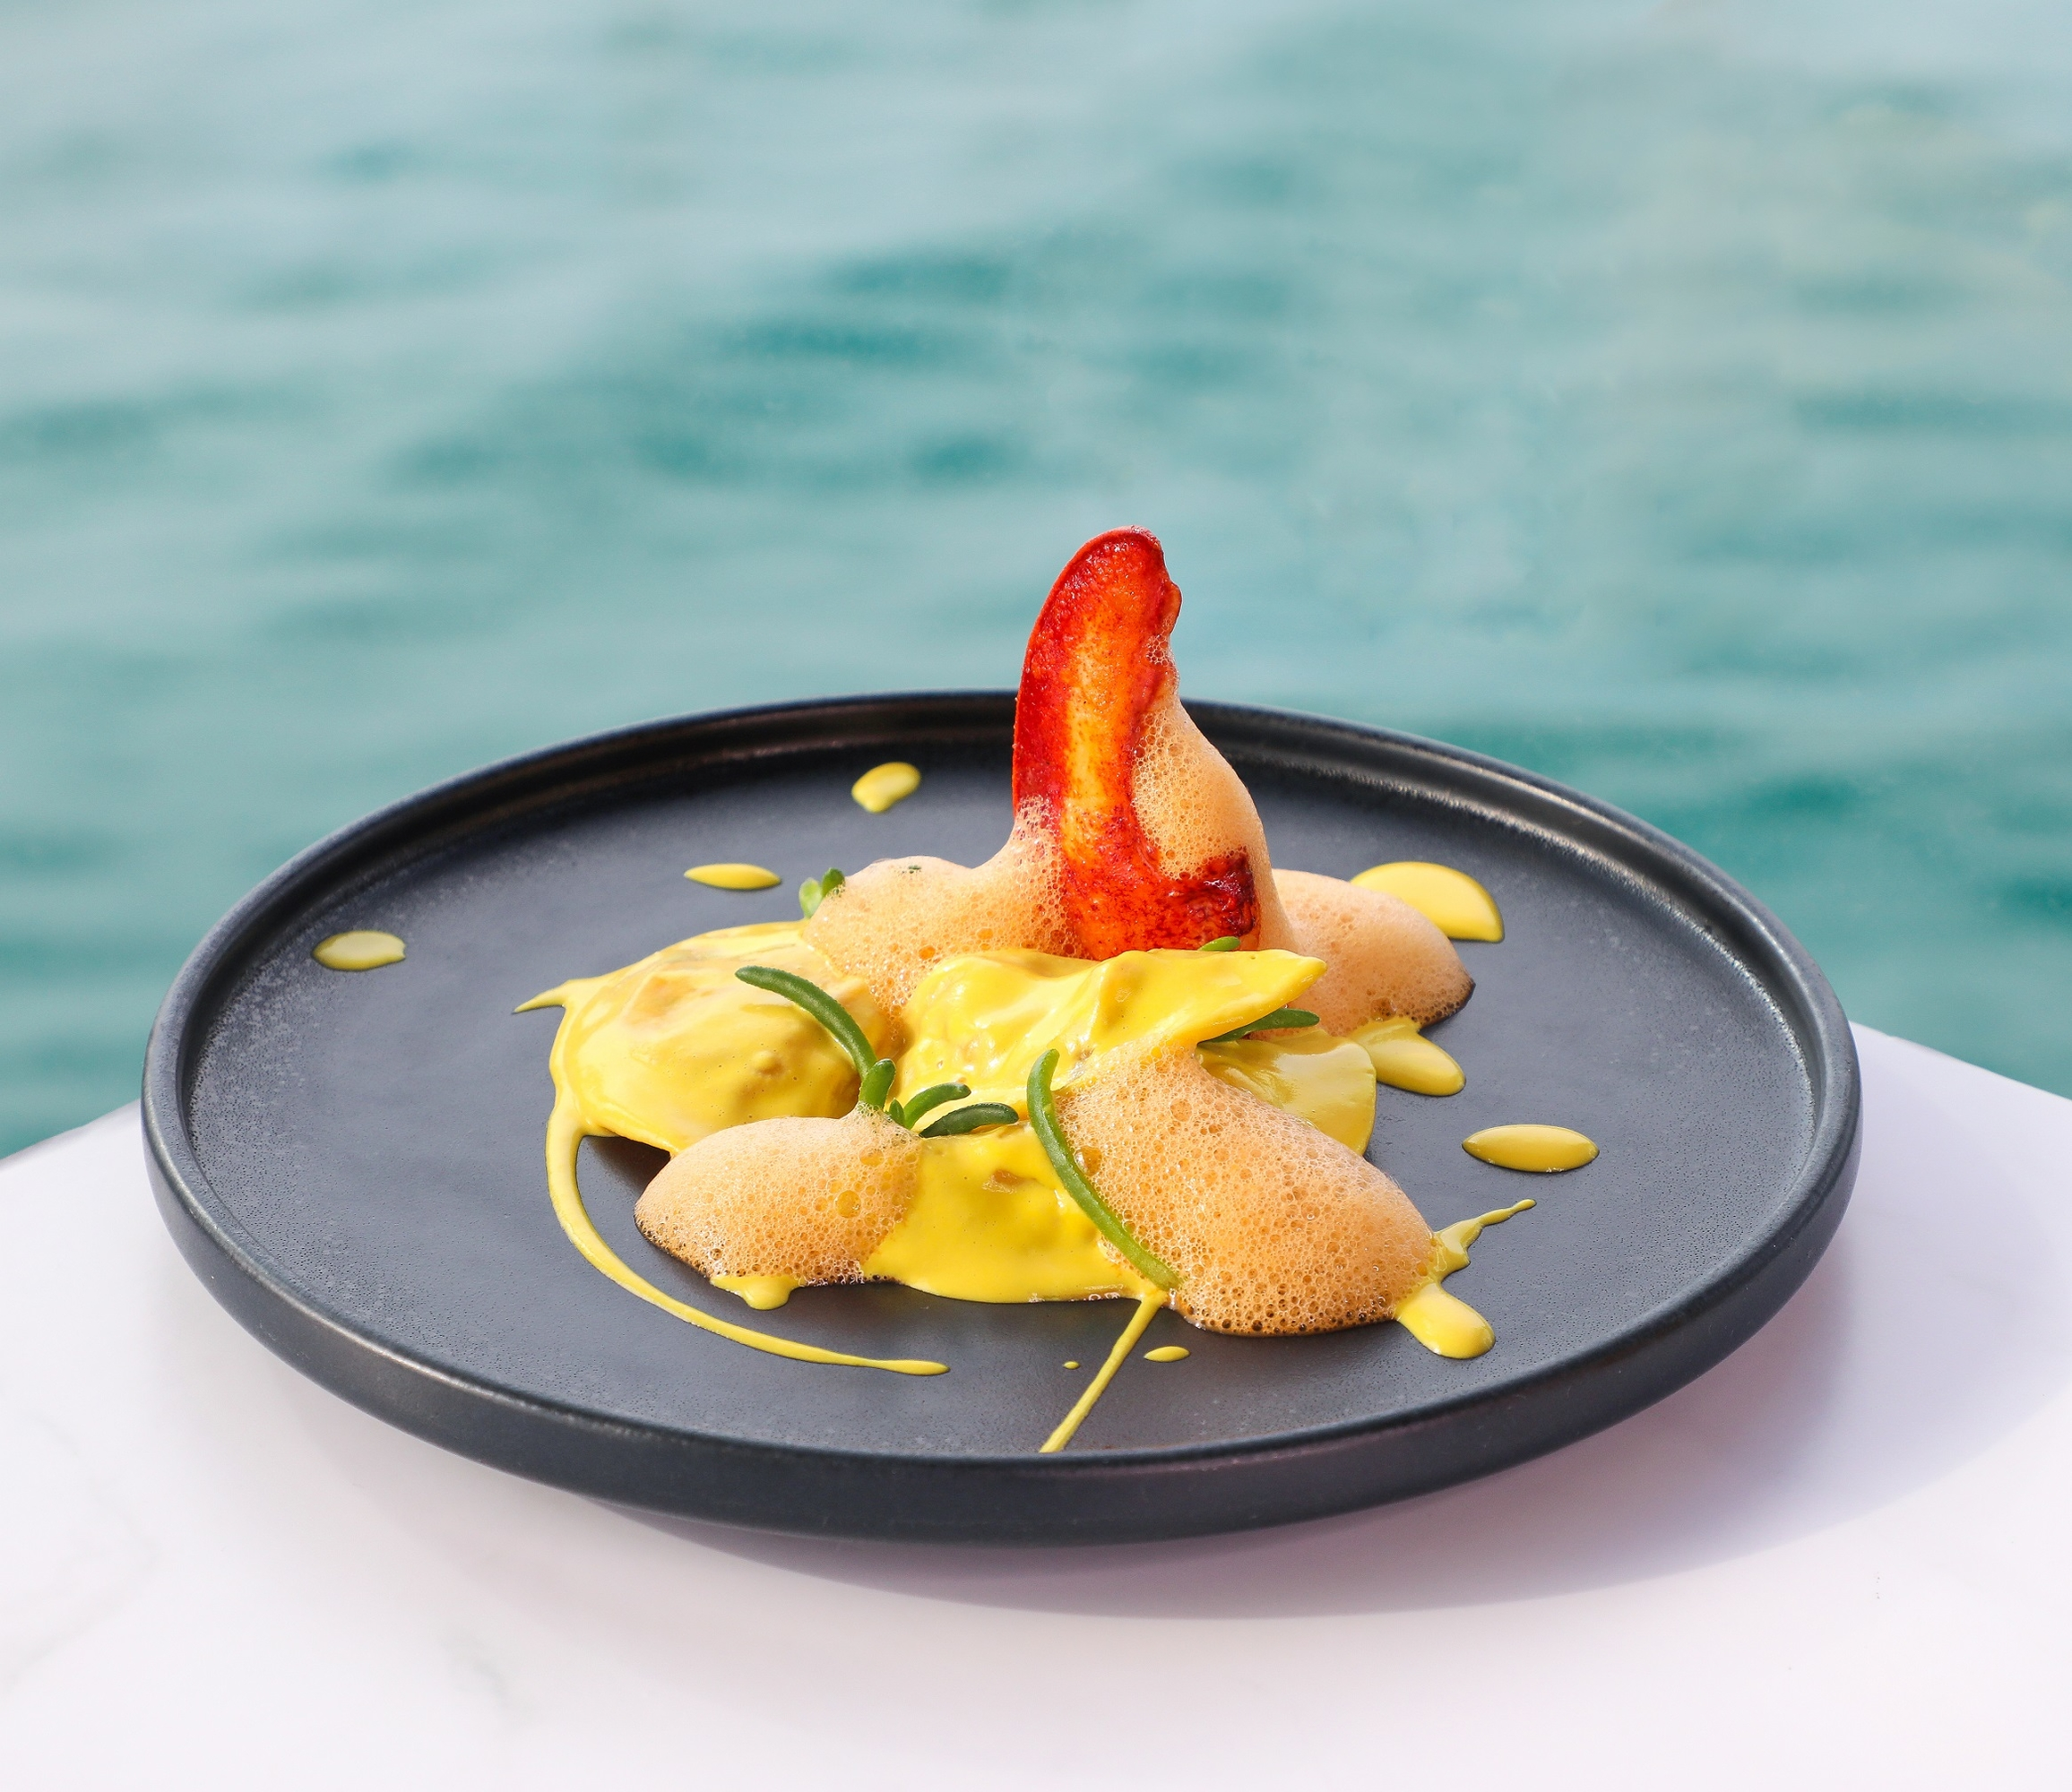 Pierchic lobster and UAE ricotta ravioli